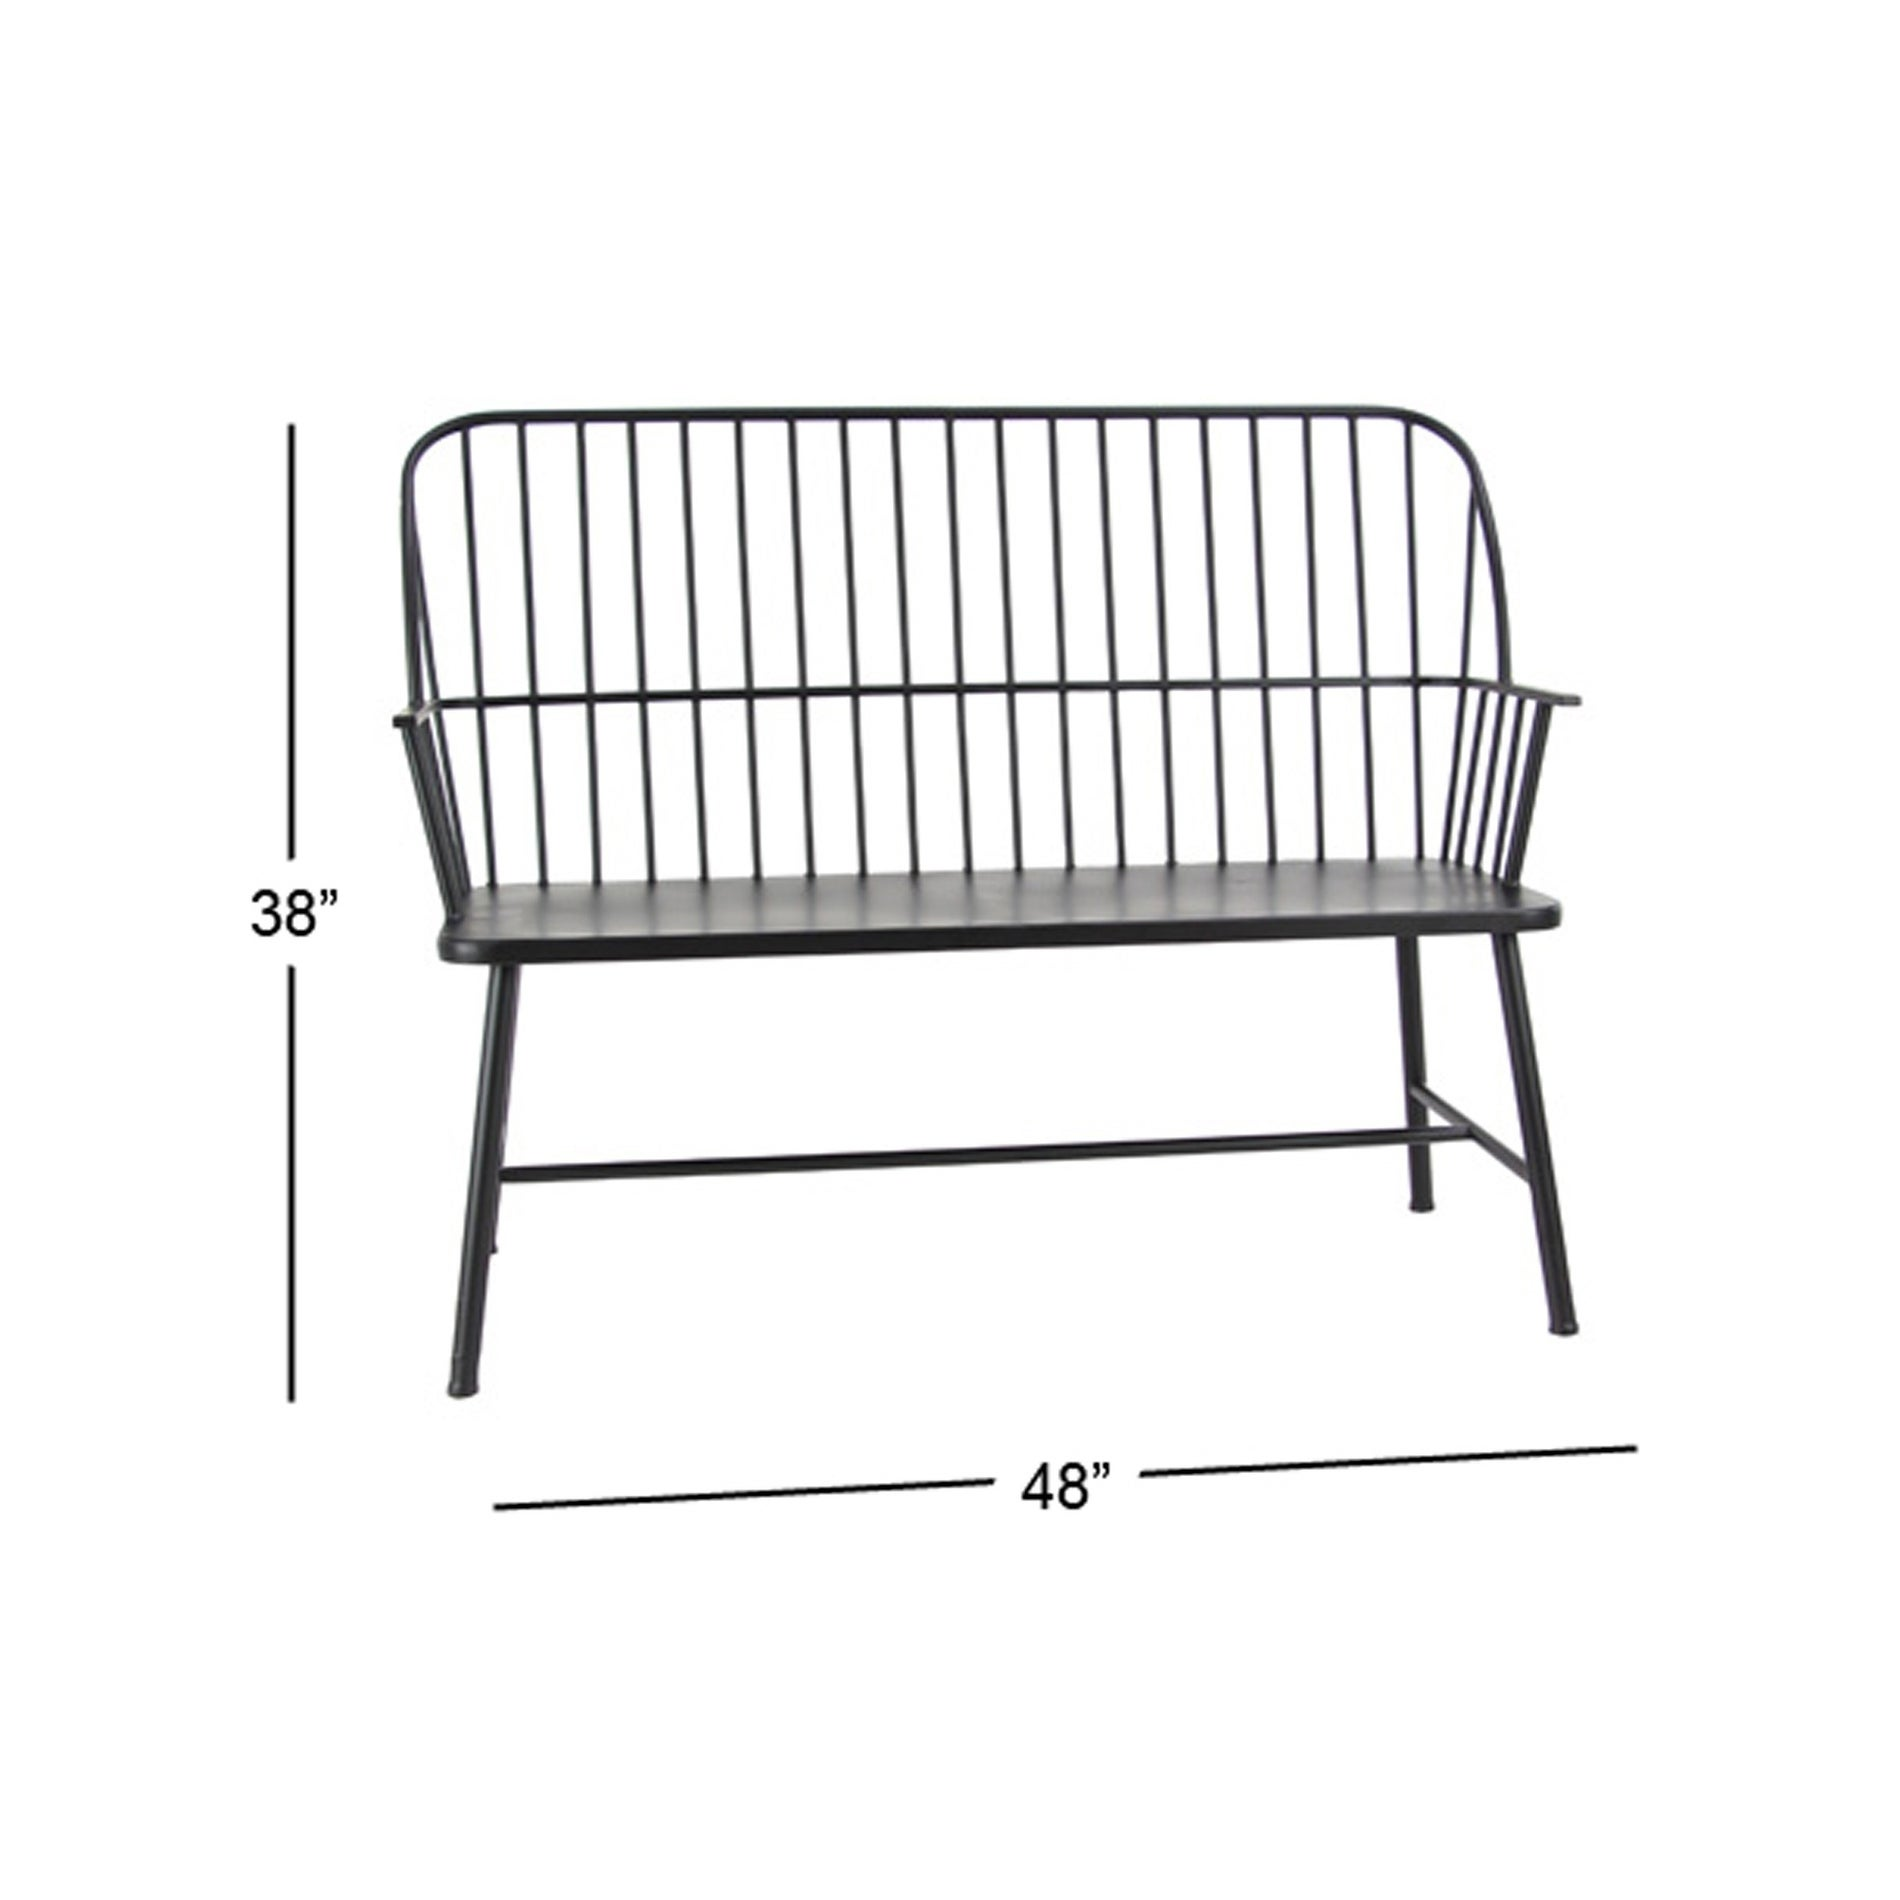 Shop Traditional 38 X 48 Inch Black Iron Patio Bench By Studio 350   On  Sale   Free Shipping Today   Overstock.com   20444685